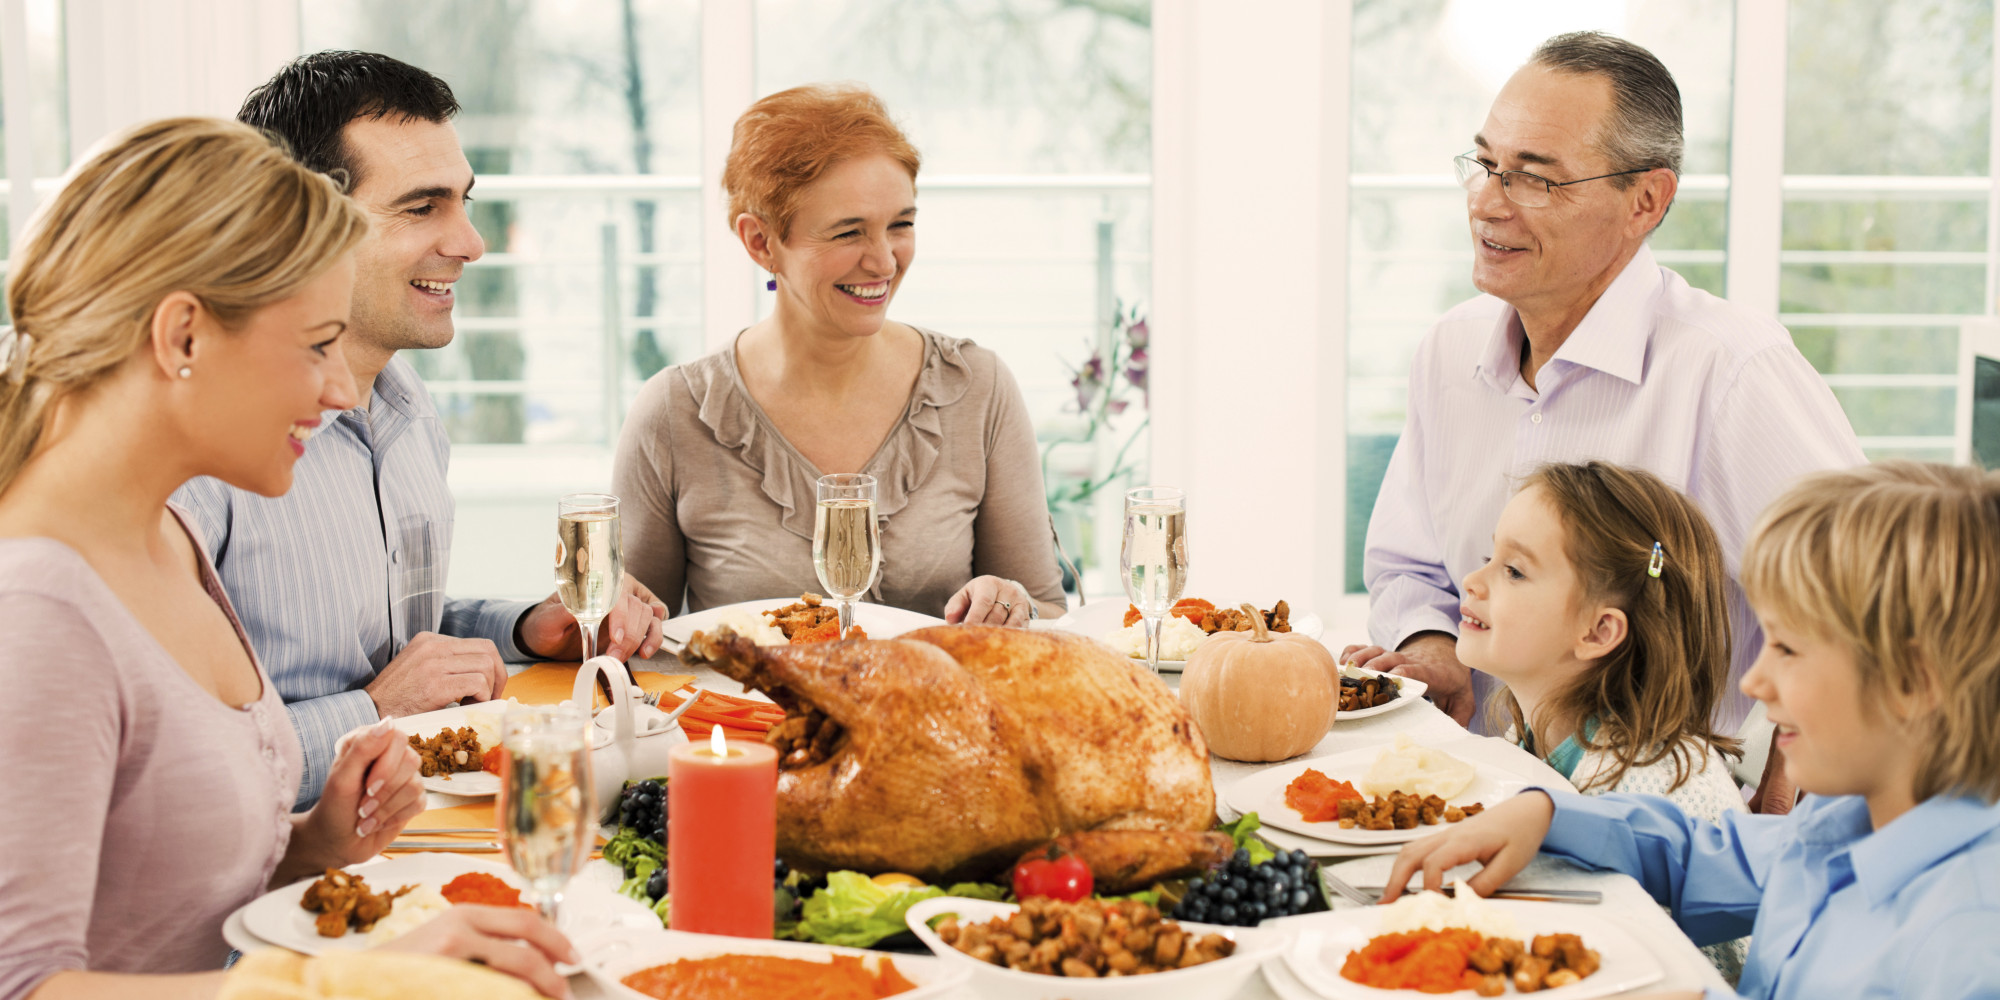 Much Turkey Family 24 Do You Feed Need Person How